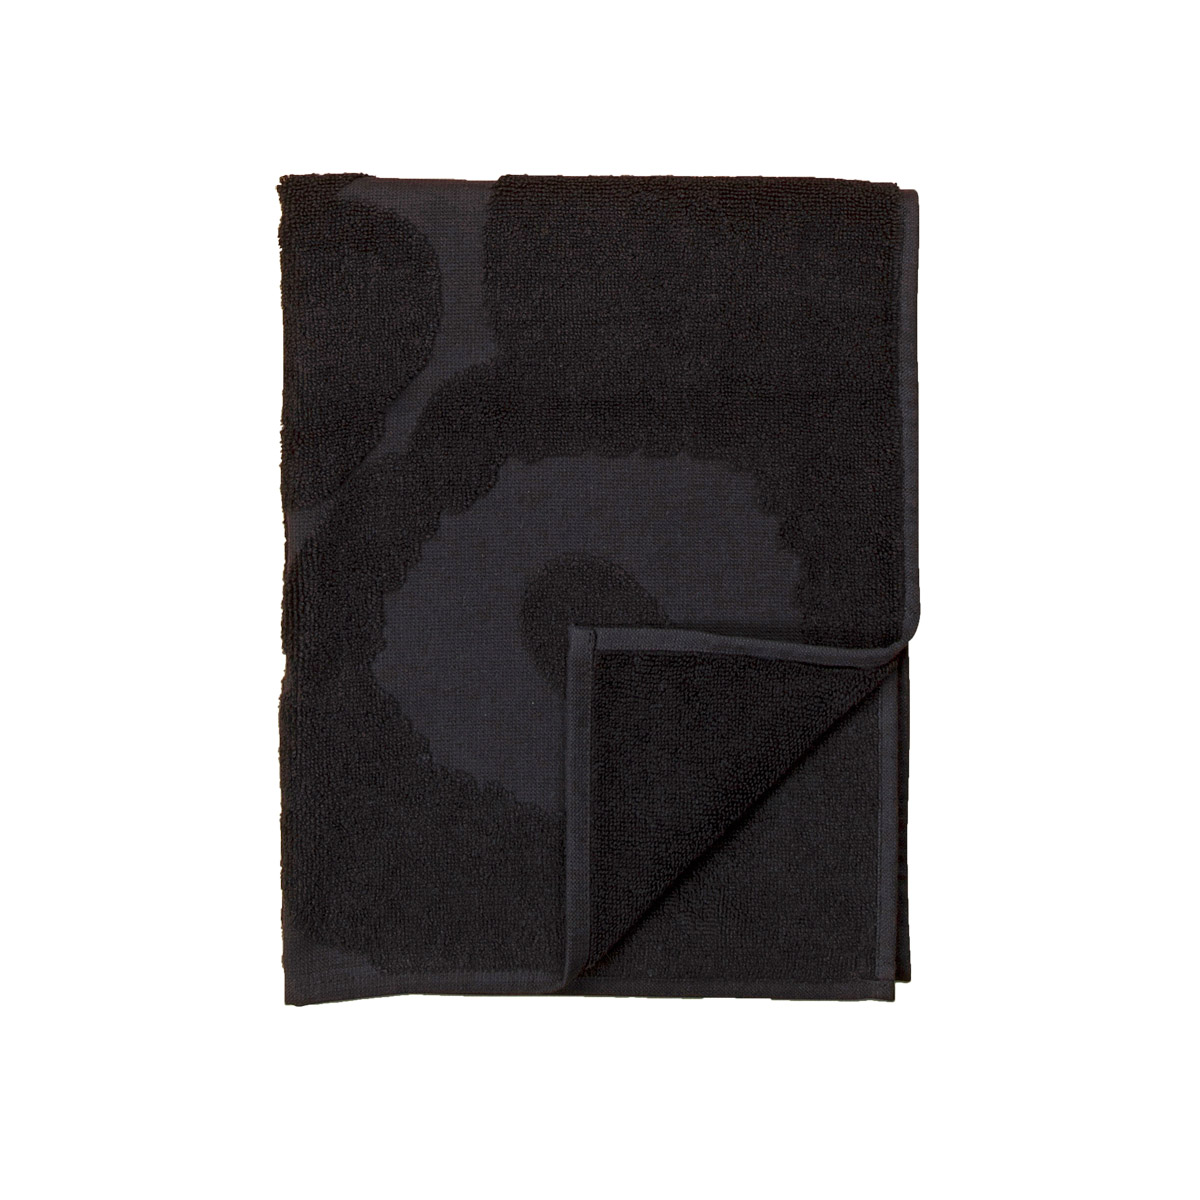 Black Towels: smashingprogrammsrj.tk - Your Online Towels Store! Get 5% in rewards with Club O! Superior Eco Friendly Cotton Soft and Absorbent Hand Towel (Set of 6) 70 Reviews. SALE ends in 1 day. More Options. Sherry Kline Triple Row Gimp Black 3-piece Decorative Embellished Towel Set. 5 Reviews. SALE ends in 1 day.